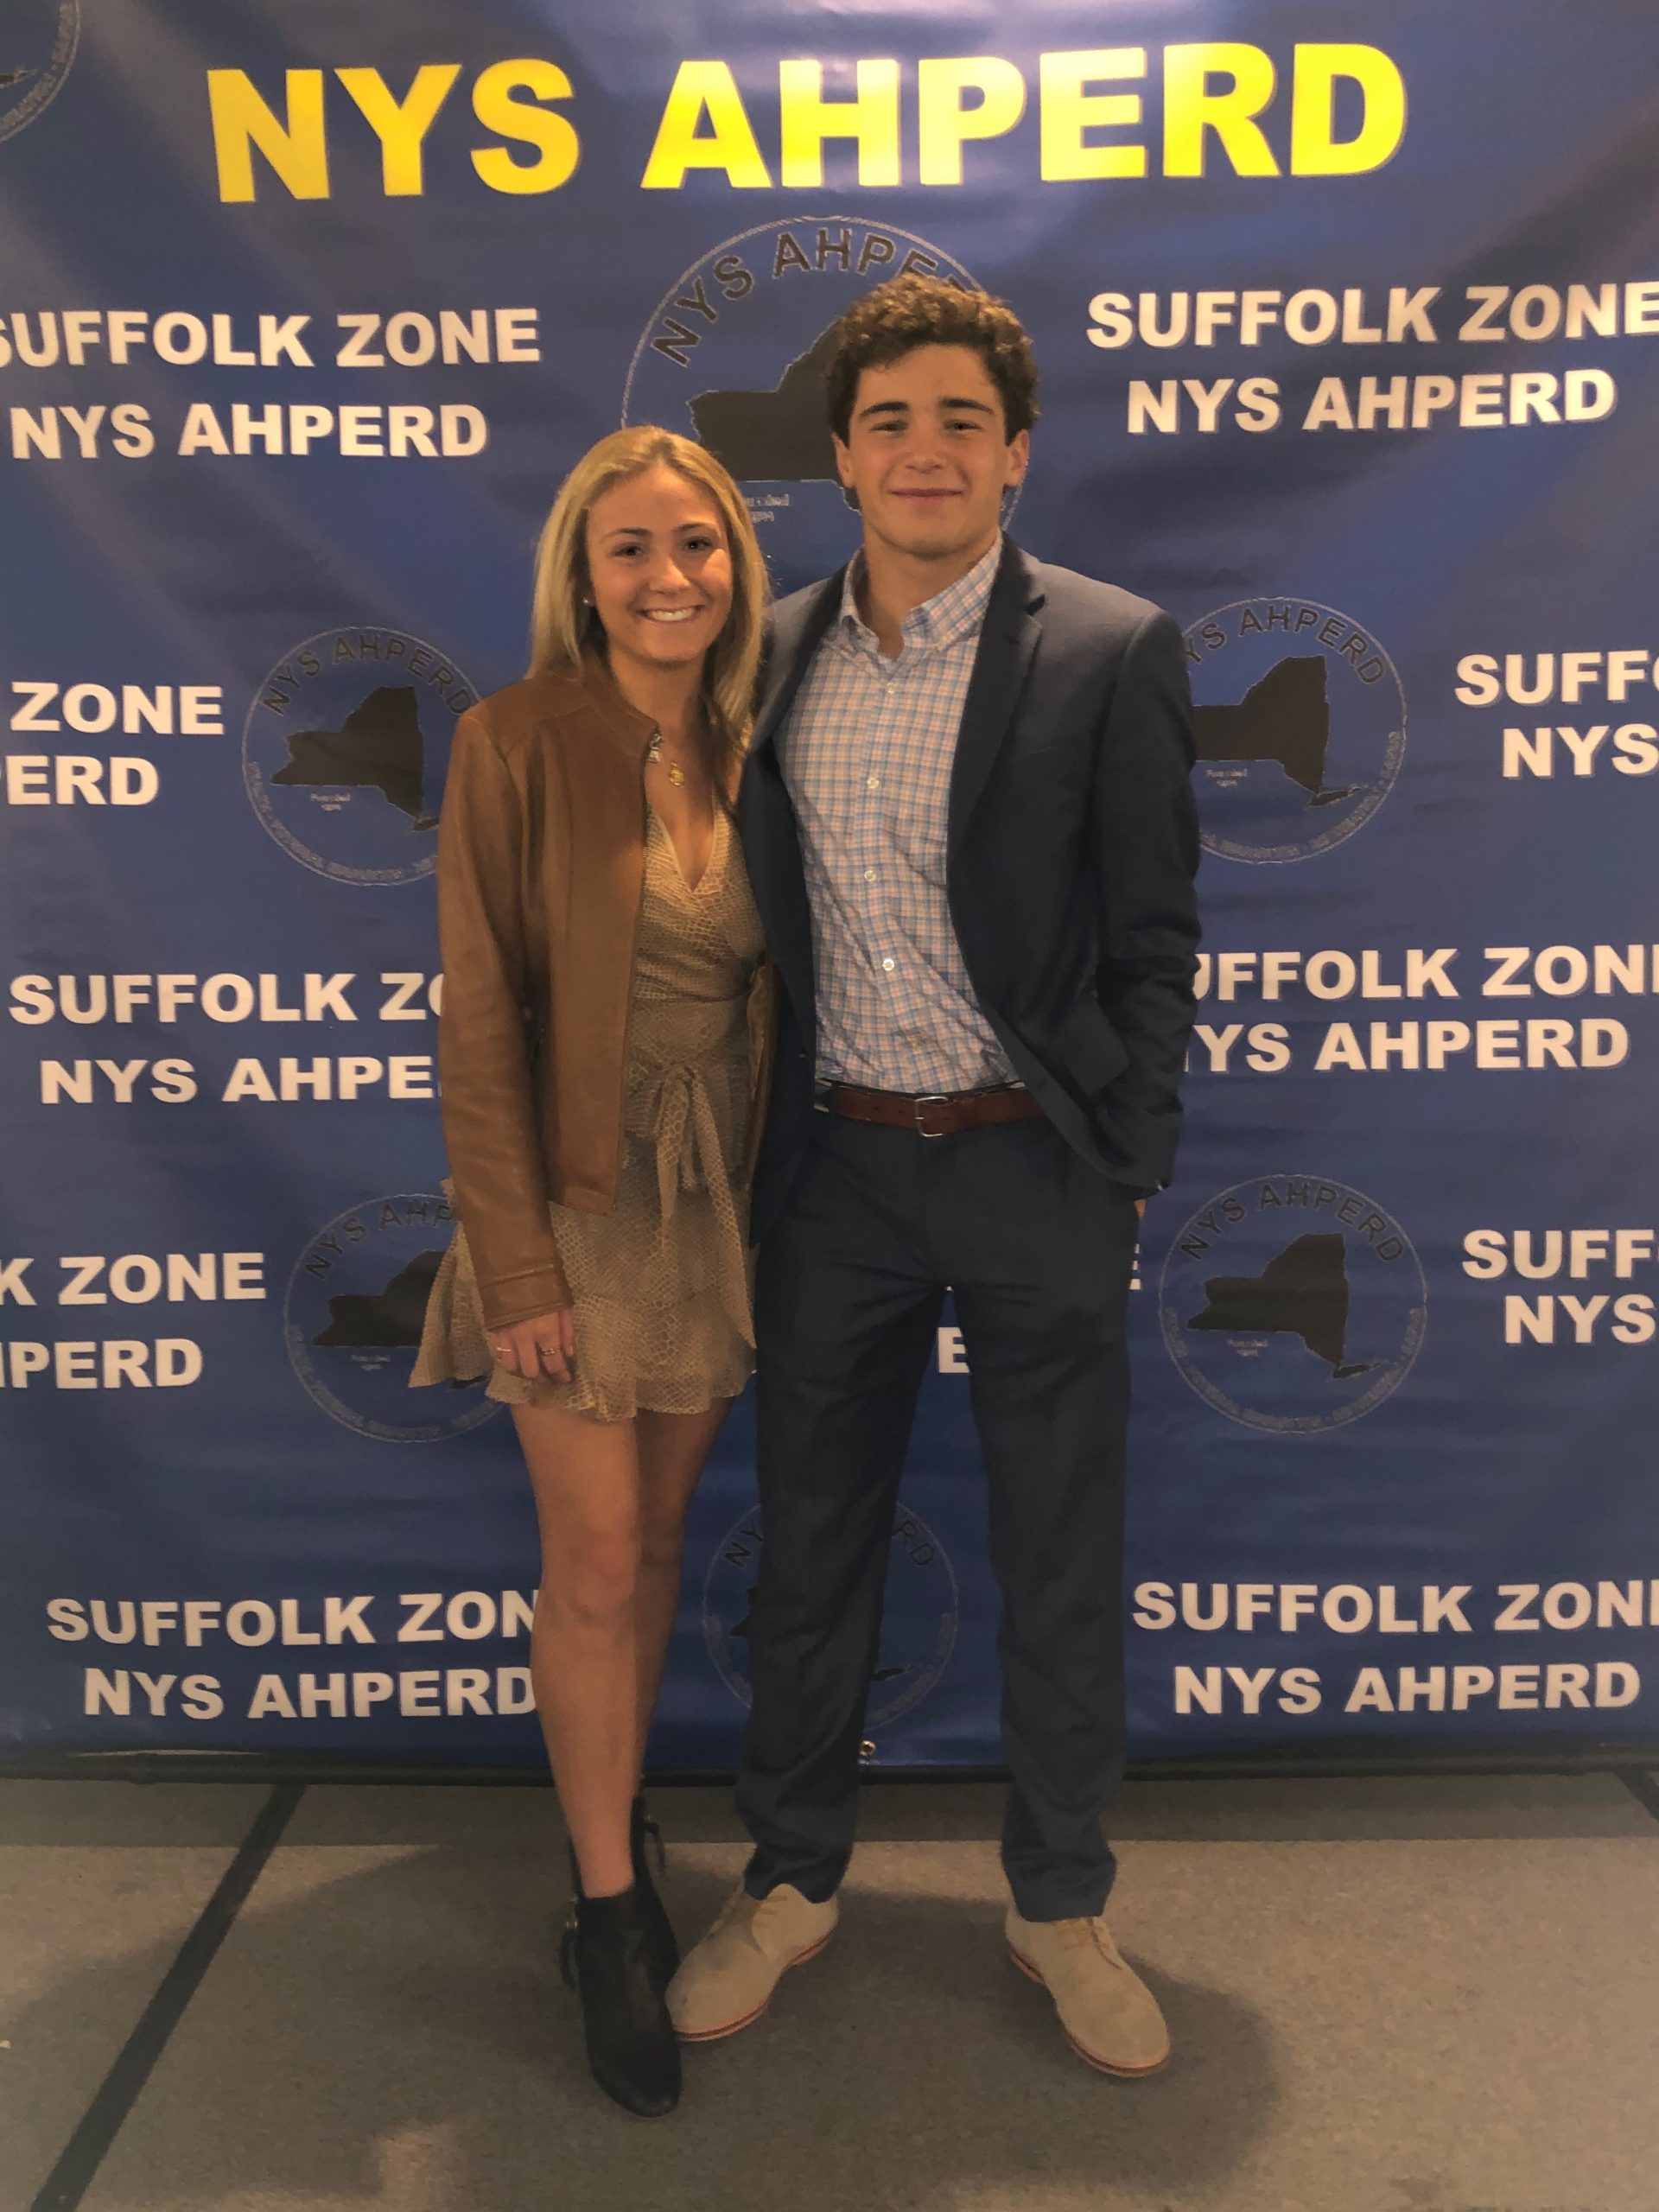 Westhampton Beach High School seniors Isabelle Smith and Jack Naglieri were honored by the New York State Association for Health, Physical Education, Recreation and Dance on December 3 as winners of the Suffolk Zone Student Leadership Award. The pair were selected based on their excellence in physical education, leadership ability and service to the community.